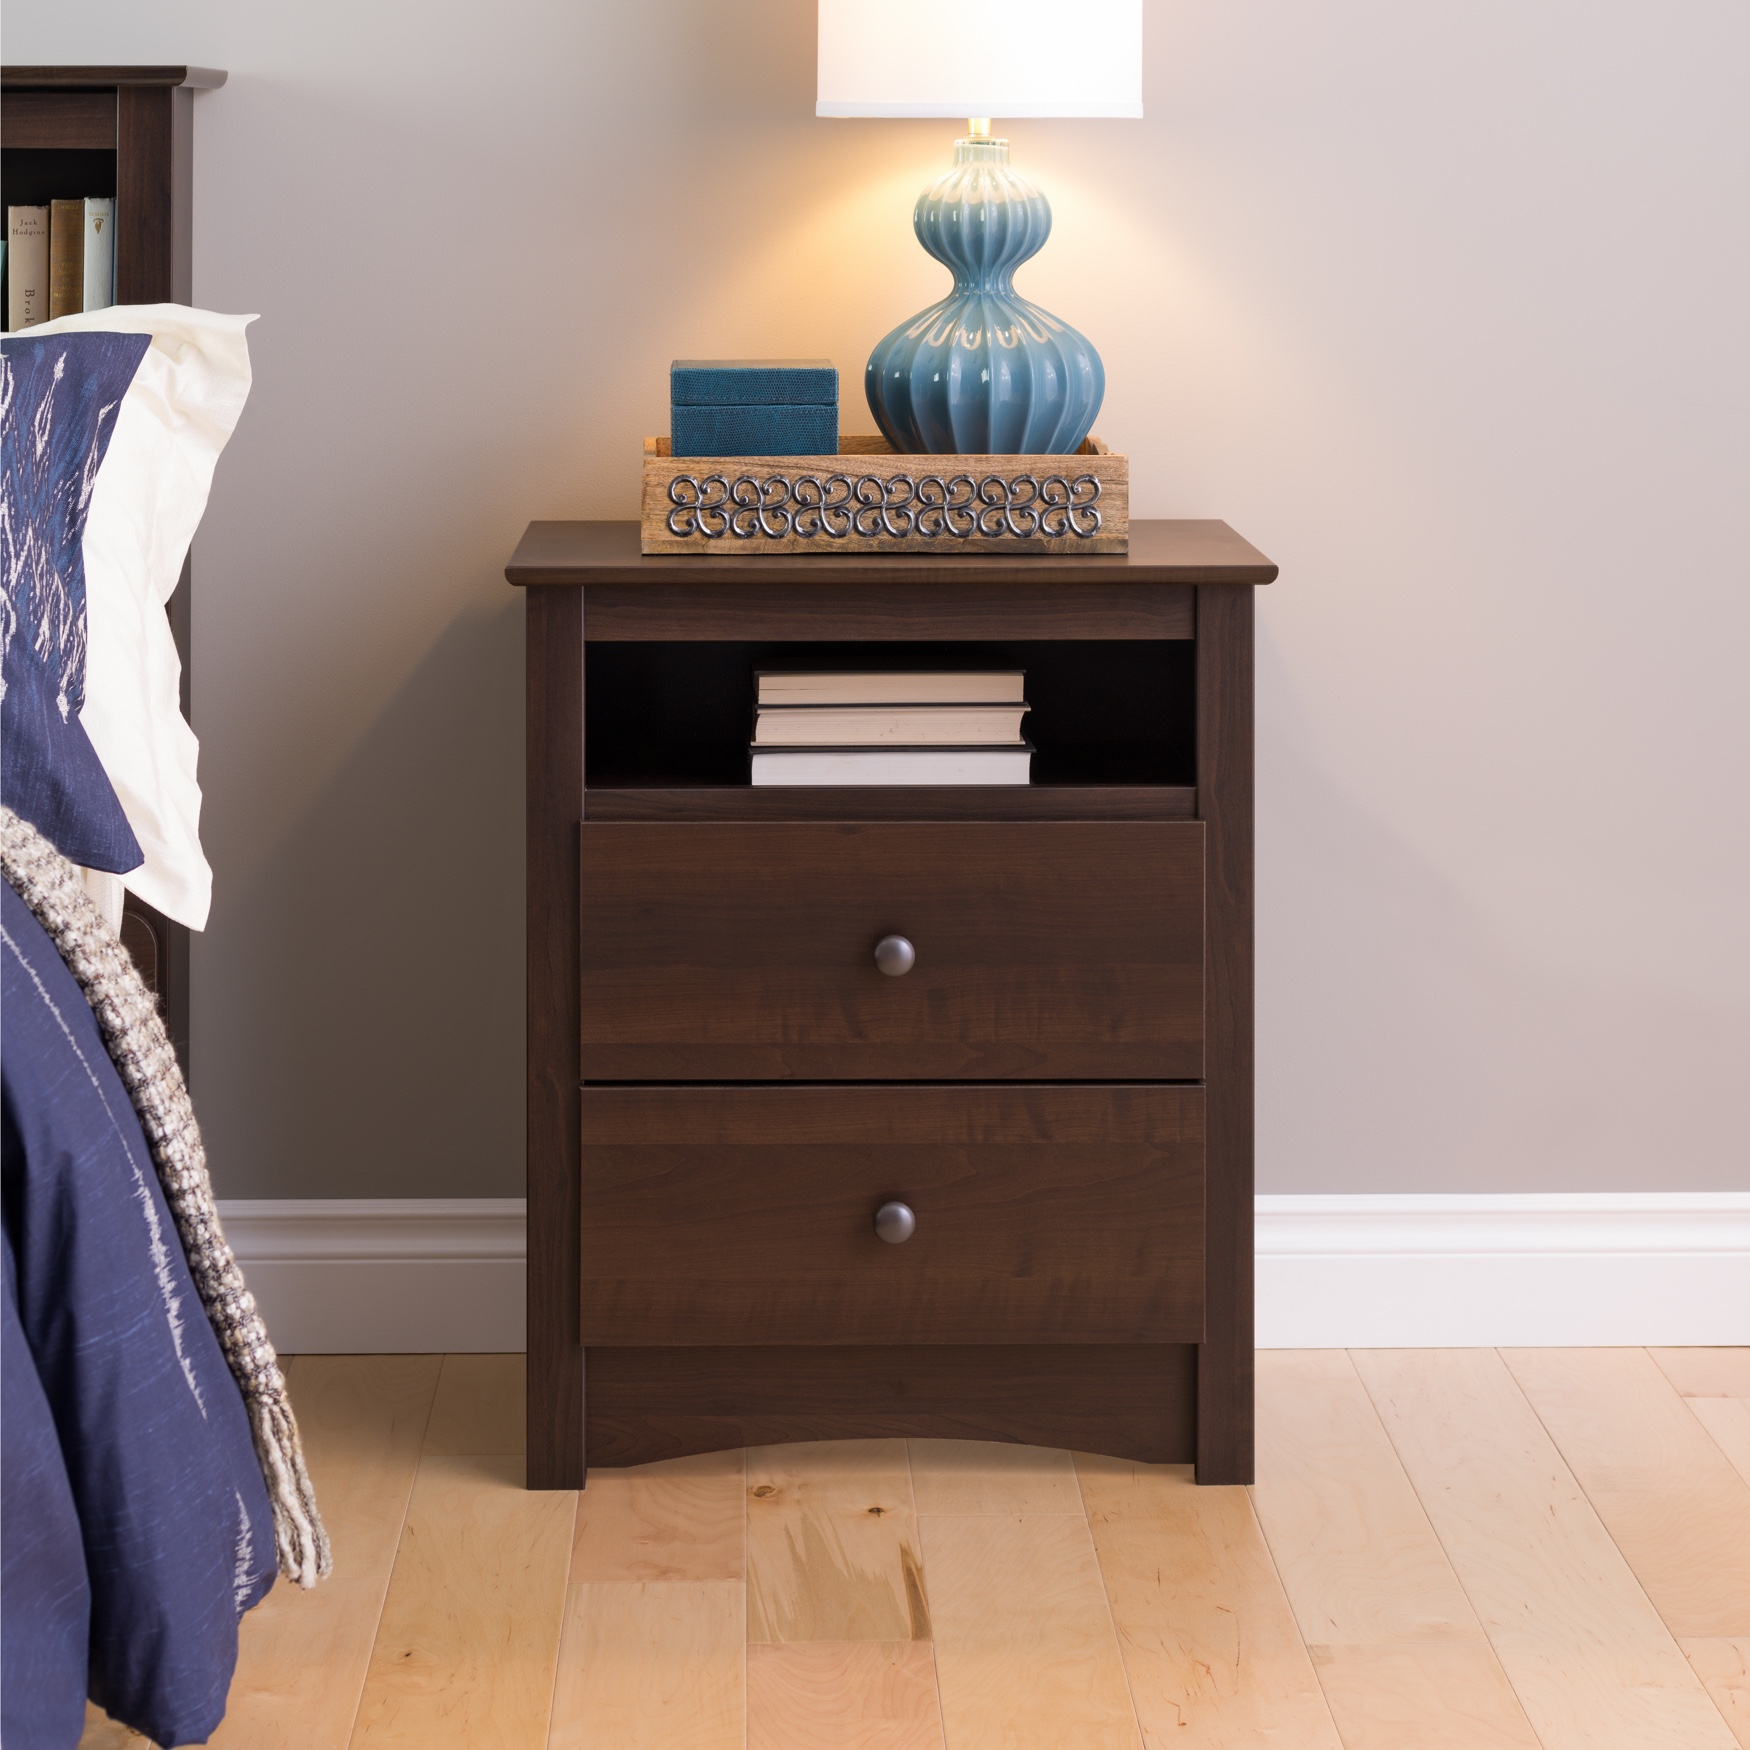 Fremont Tall 2-Drawer Nightstand with Open Shelf, Espresso, EXPRESSO